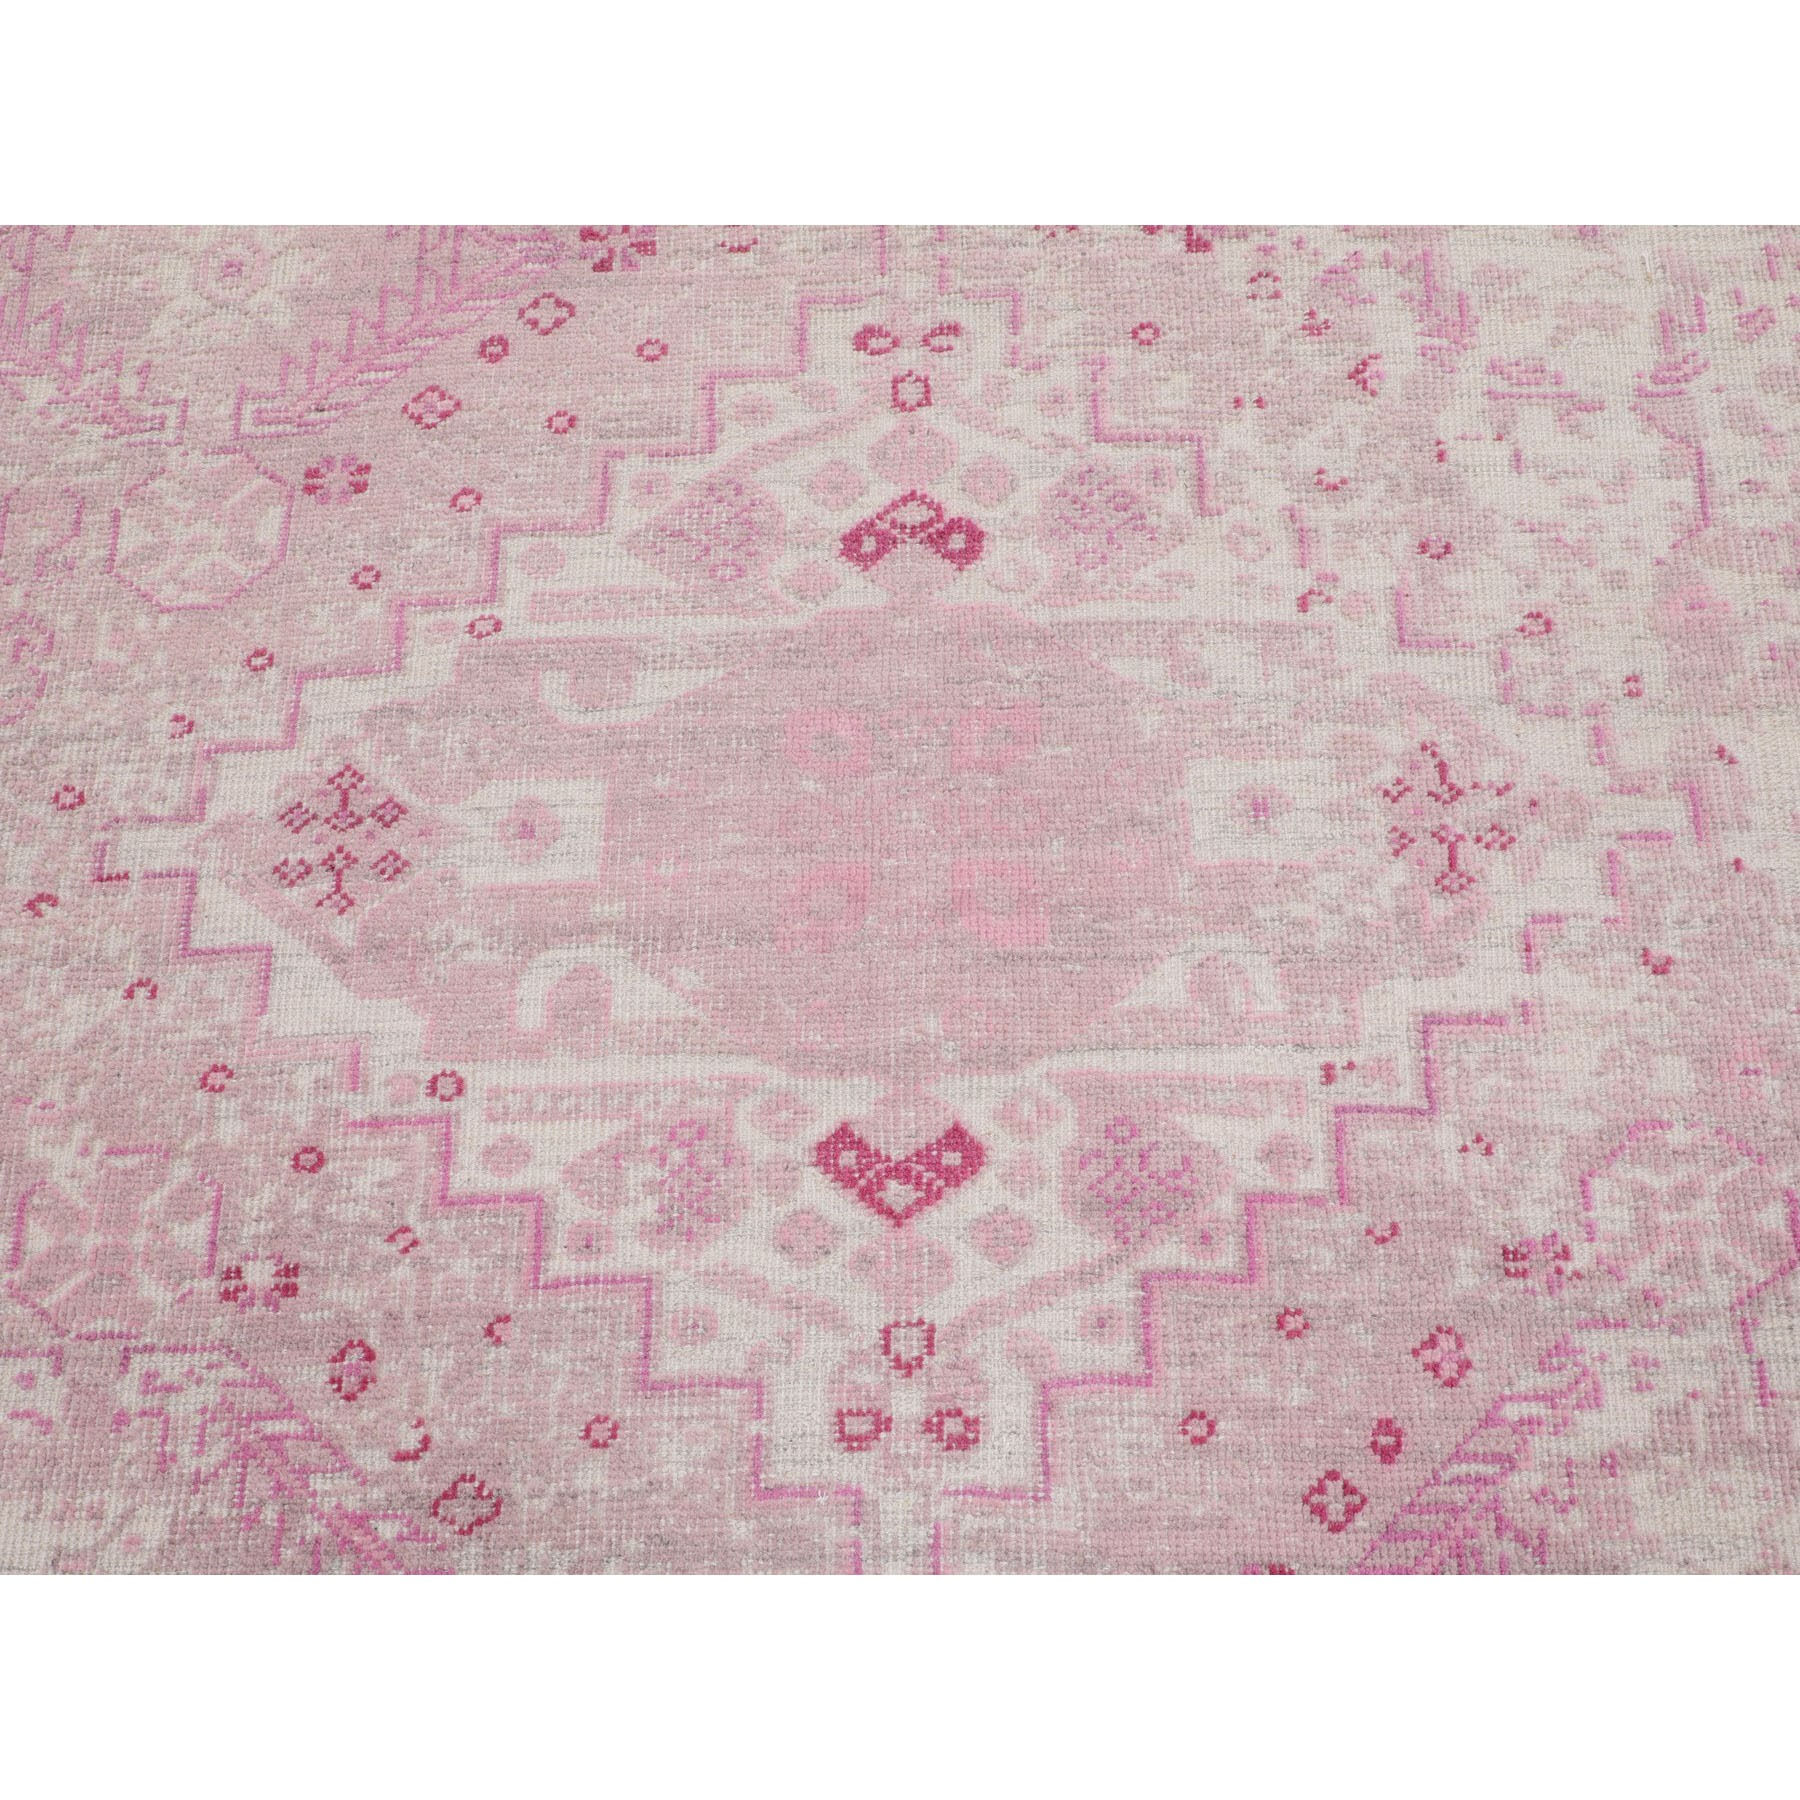 9'x12' Pink Variegated Broken Persian Design Pure Wool Hand Knotted Oriental Rug